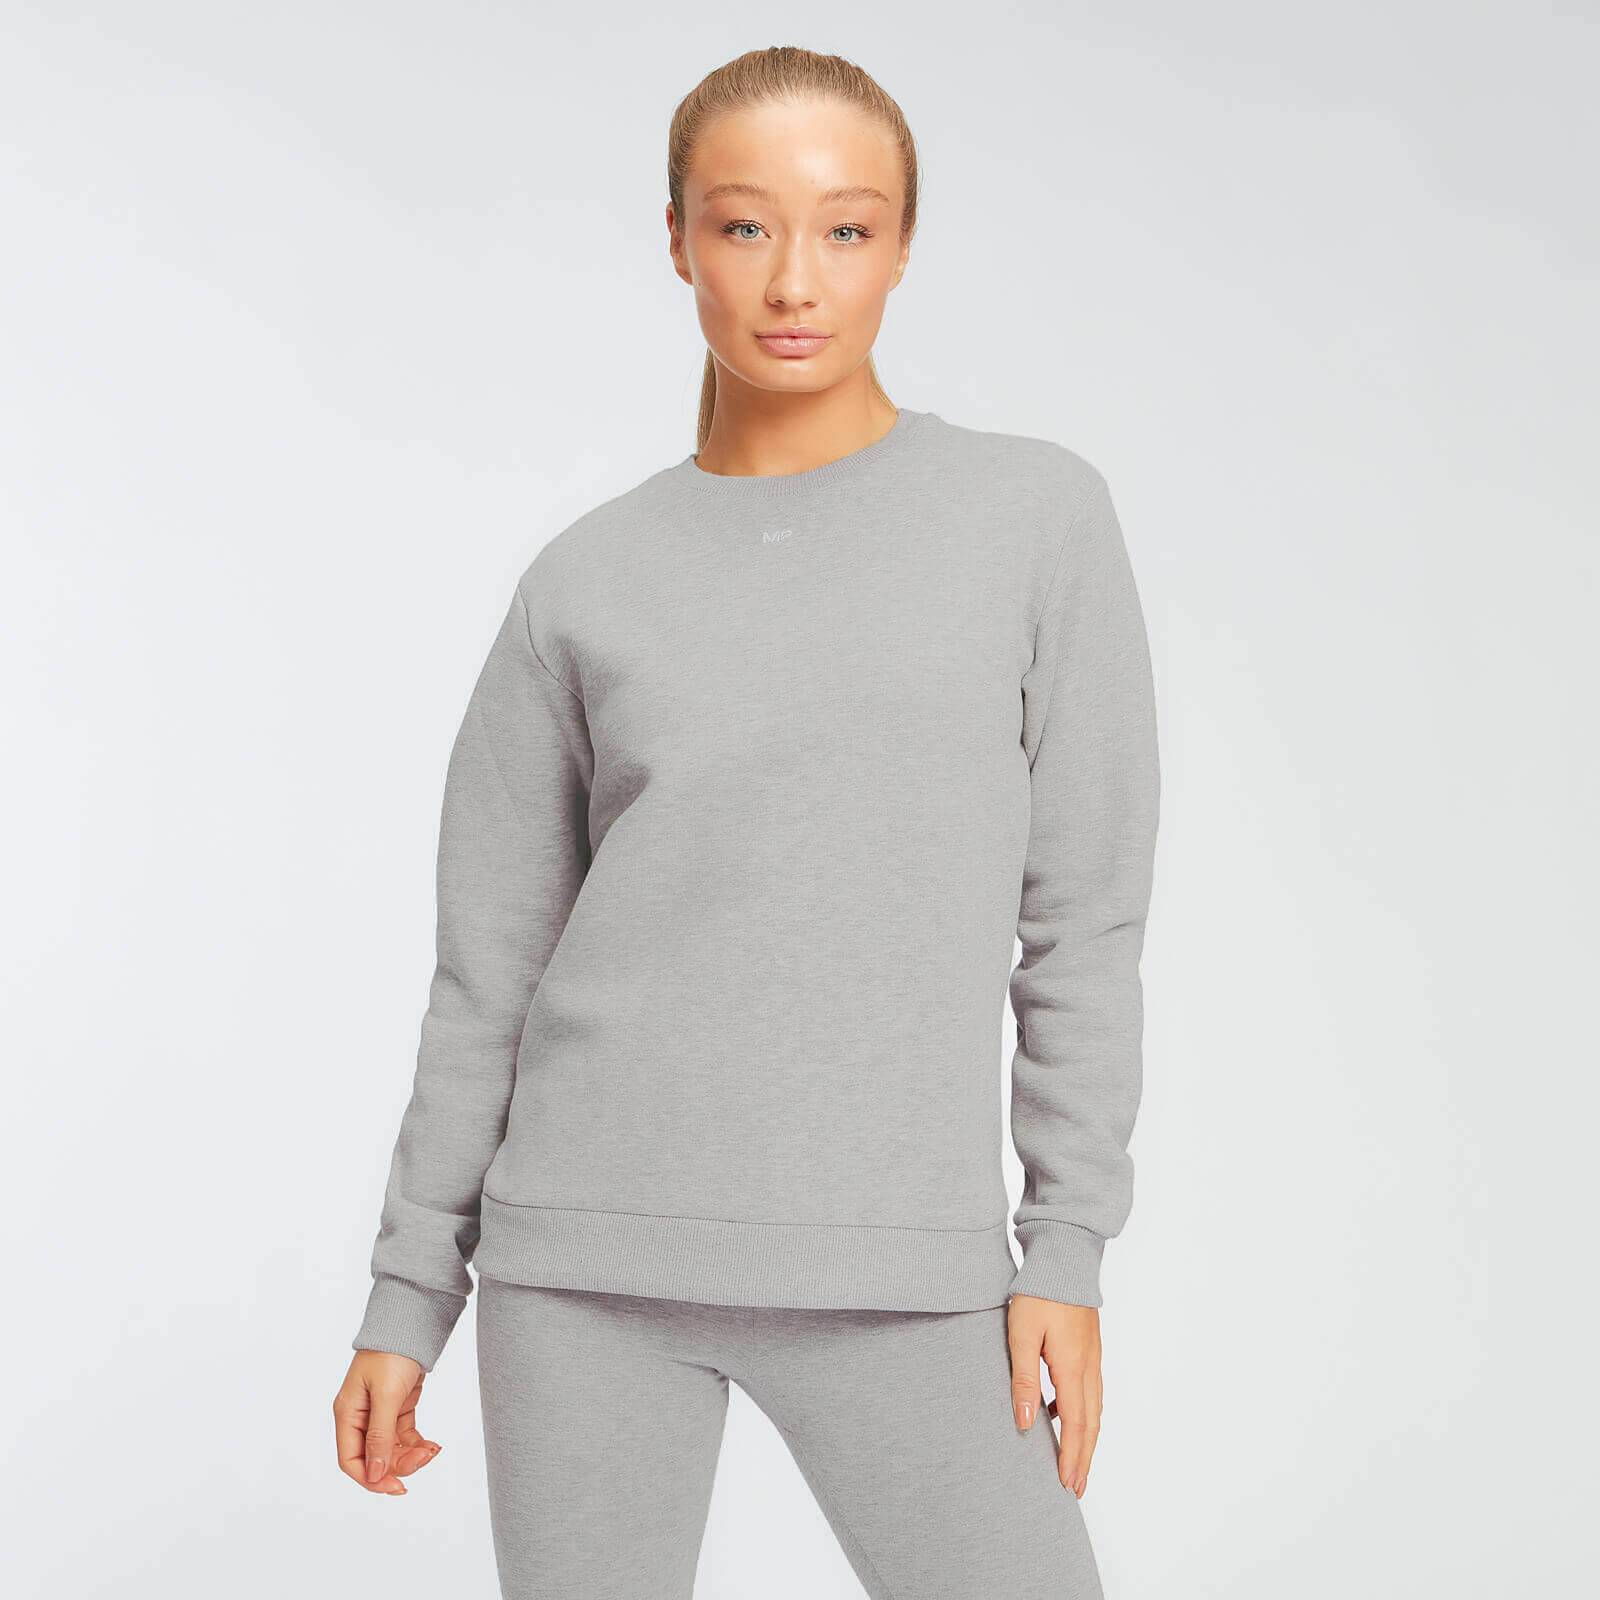 Myprotein Felpa MP Essentials da donna - Grigio mélange - XL